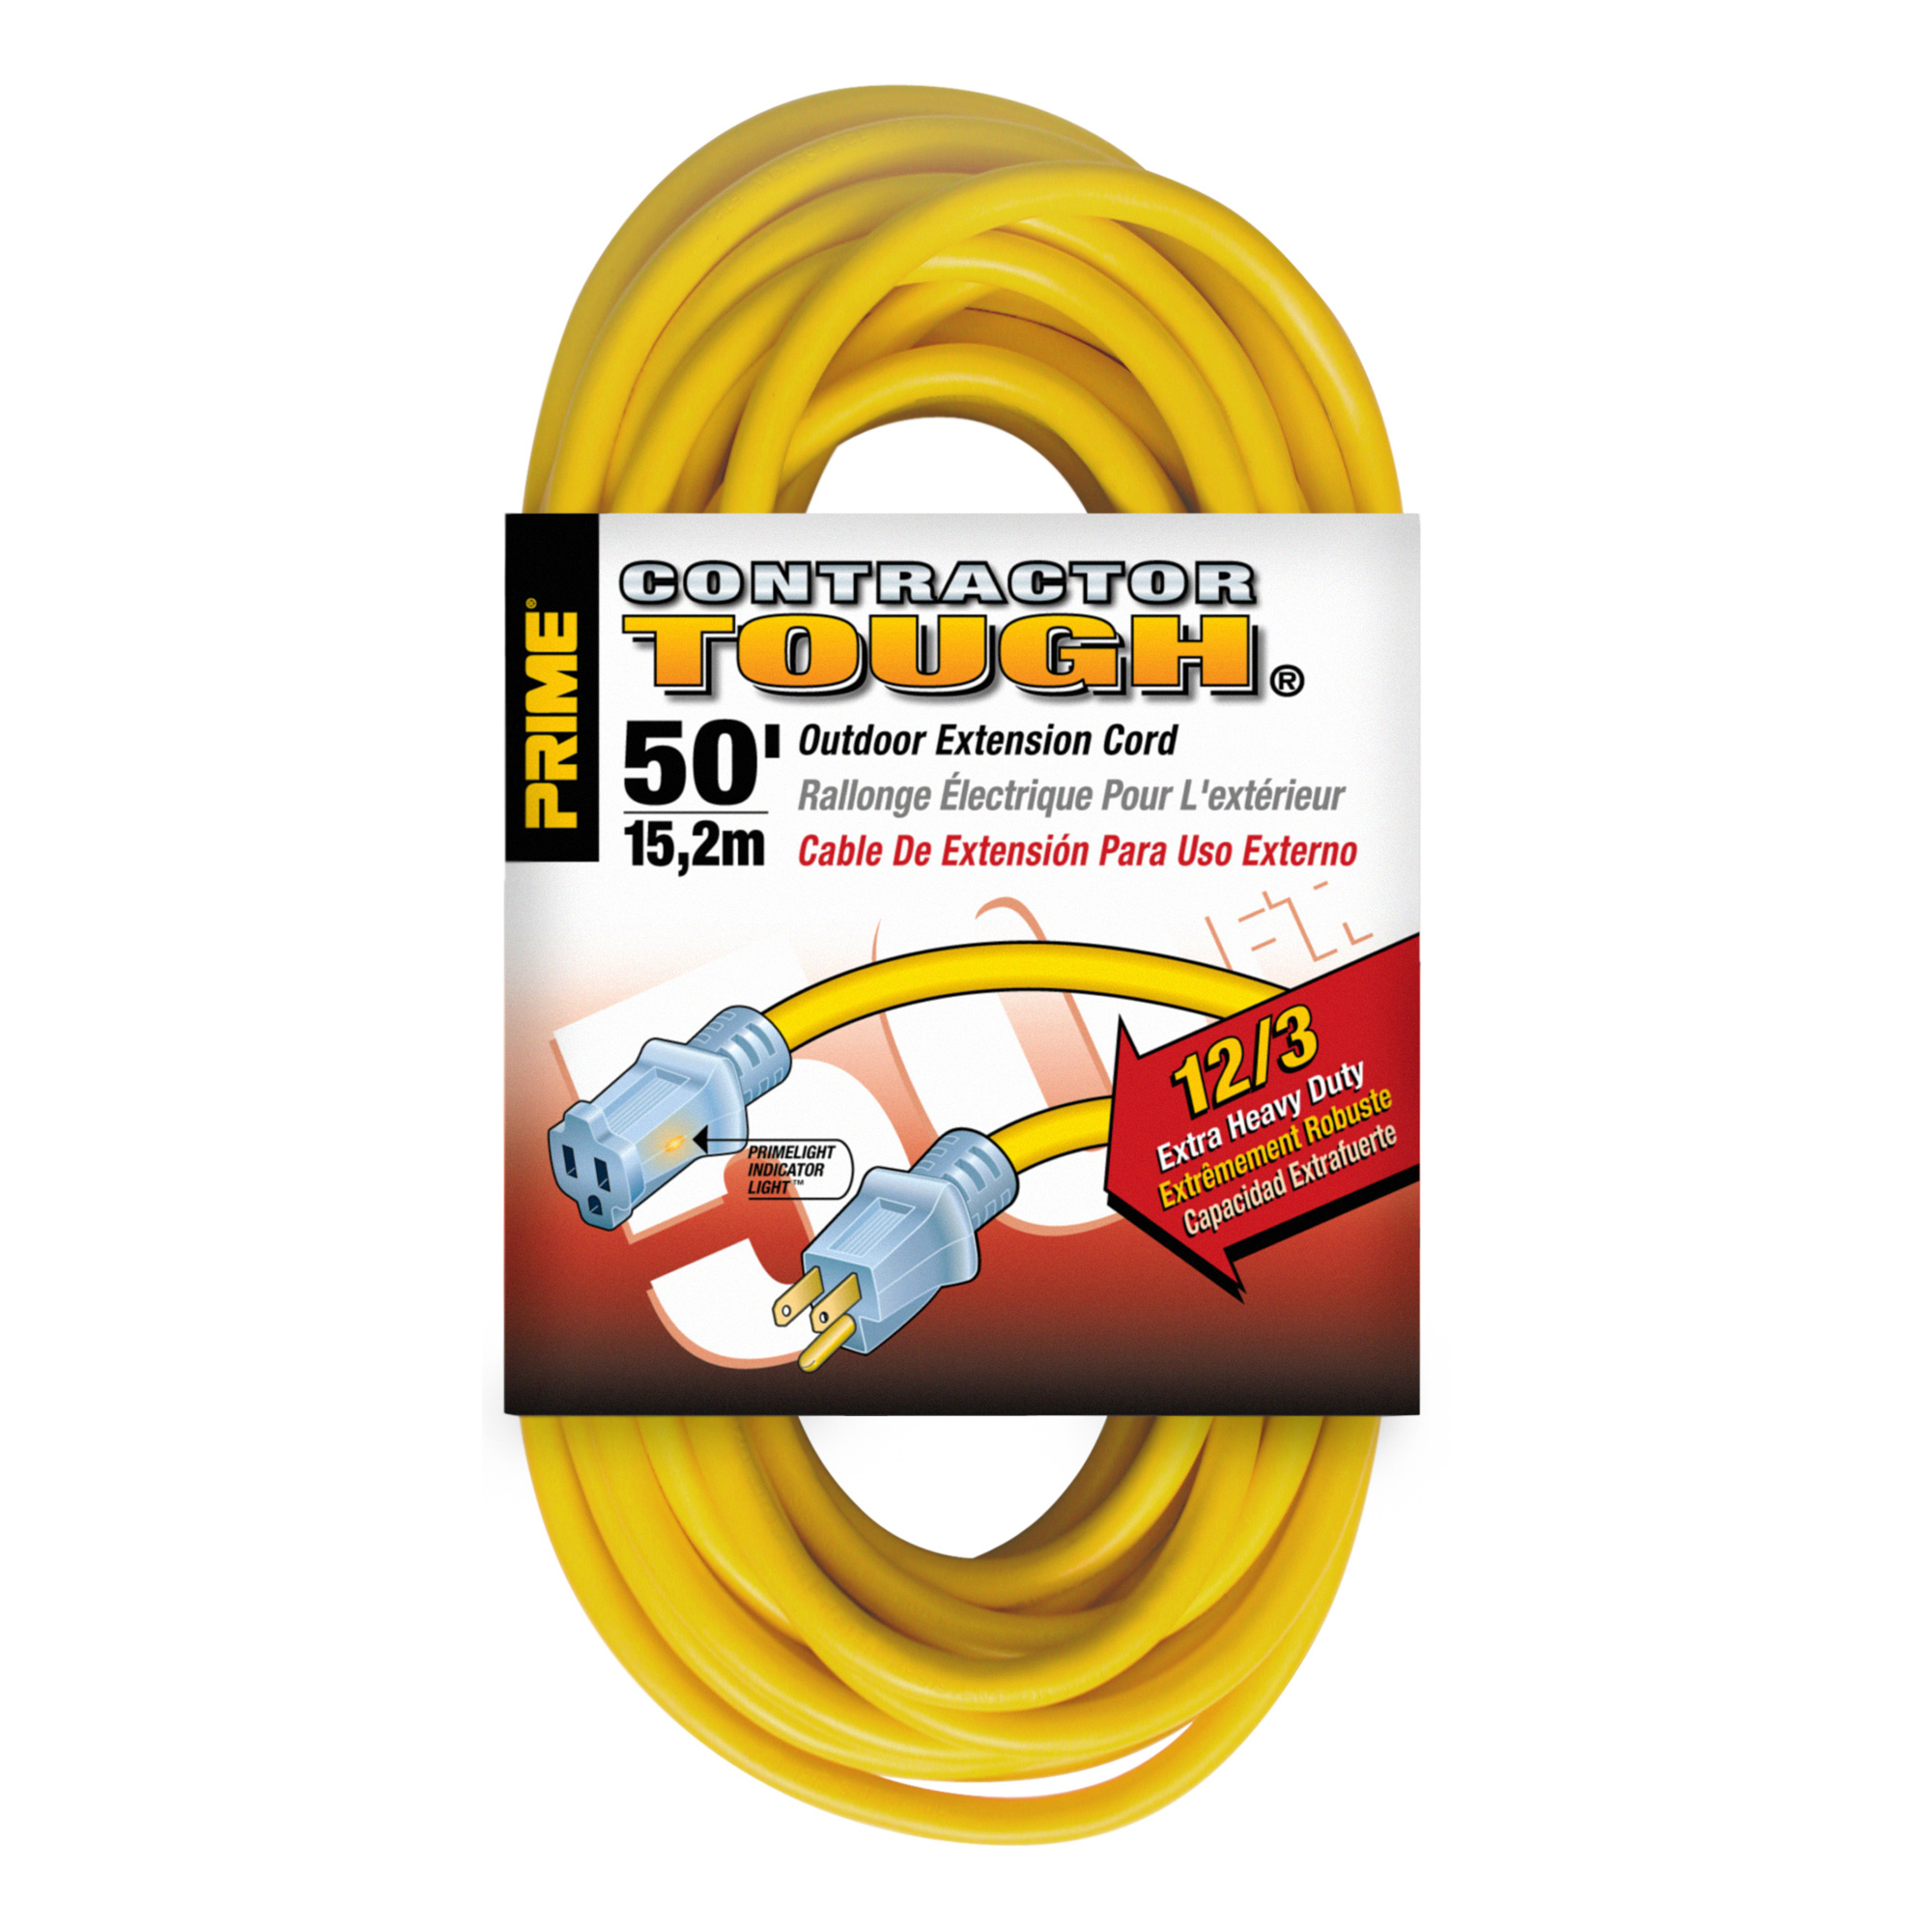 Outdoor Extension Cords 50ft 12/3 with Primelight Indicator Yellow